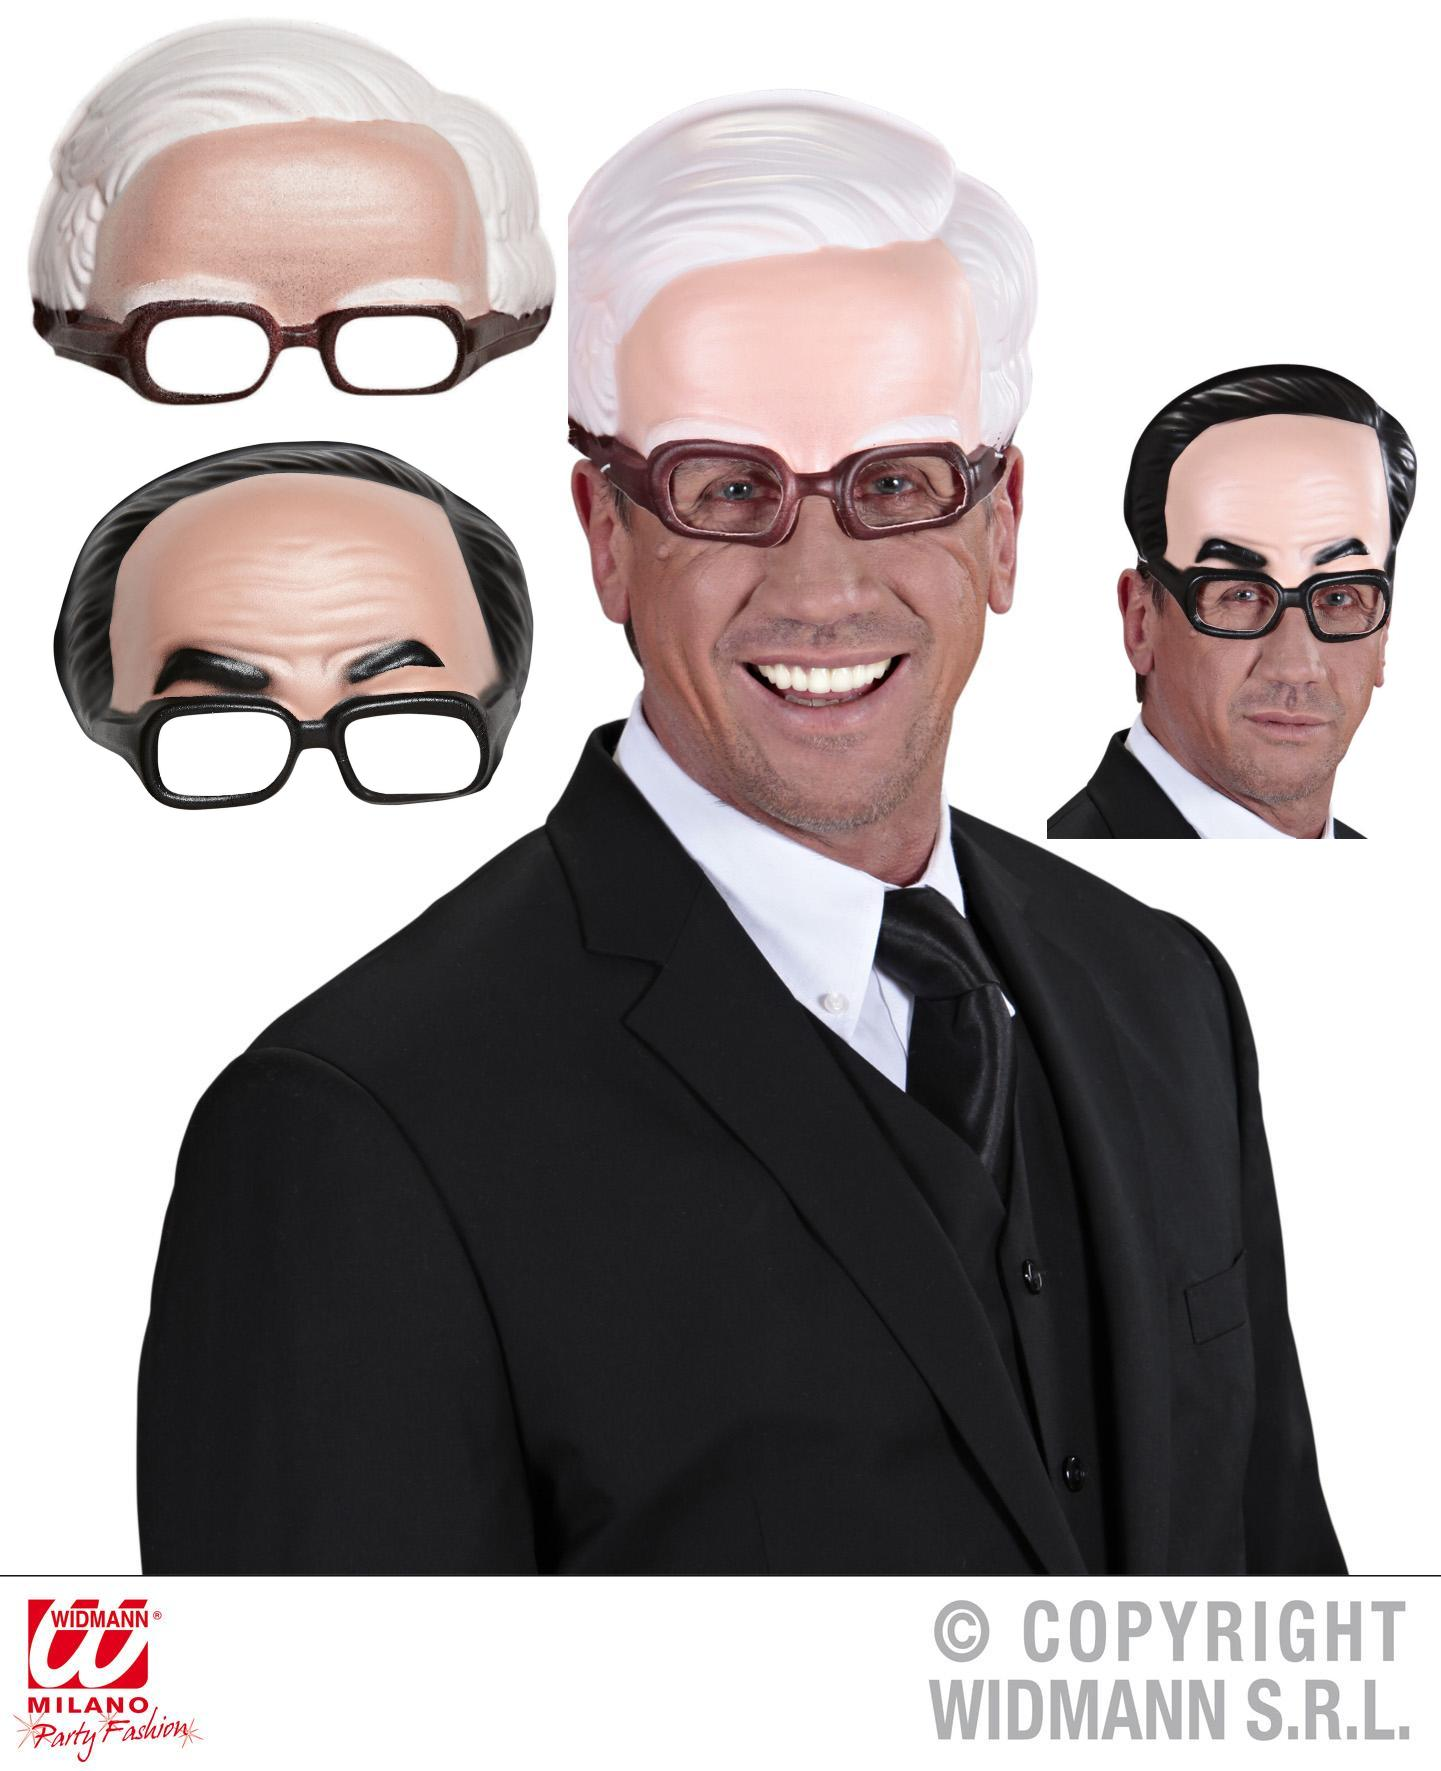 Half mask without Chin, white, black Hair, Glasses Opa Men ...